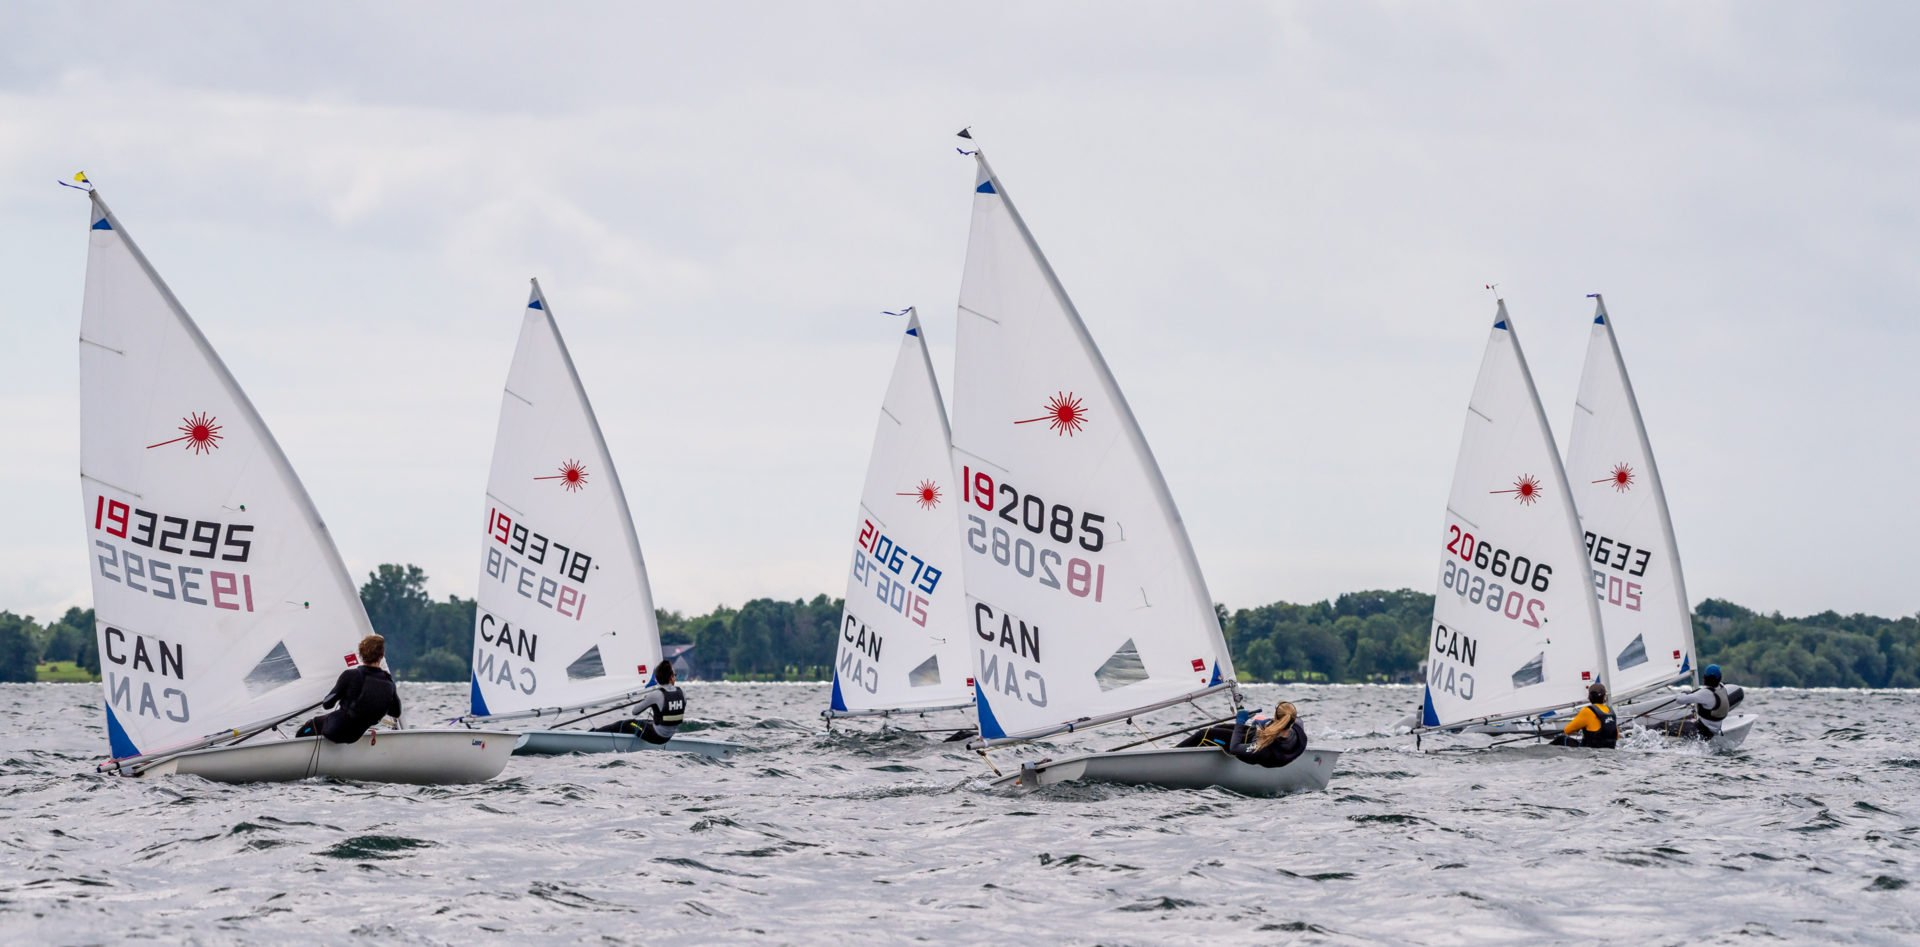 2022 CANADIAN SAILING YOUTH SQUAD